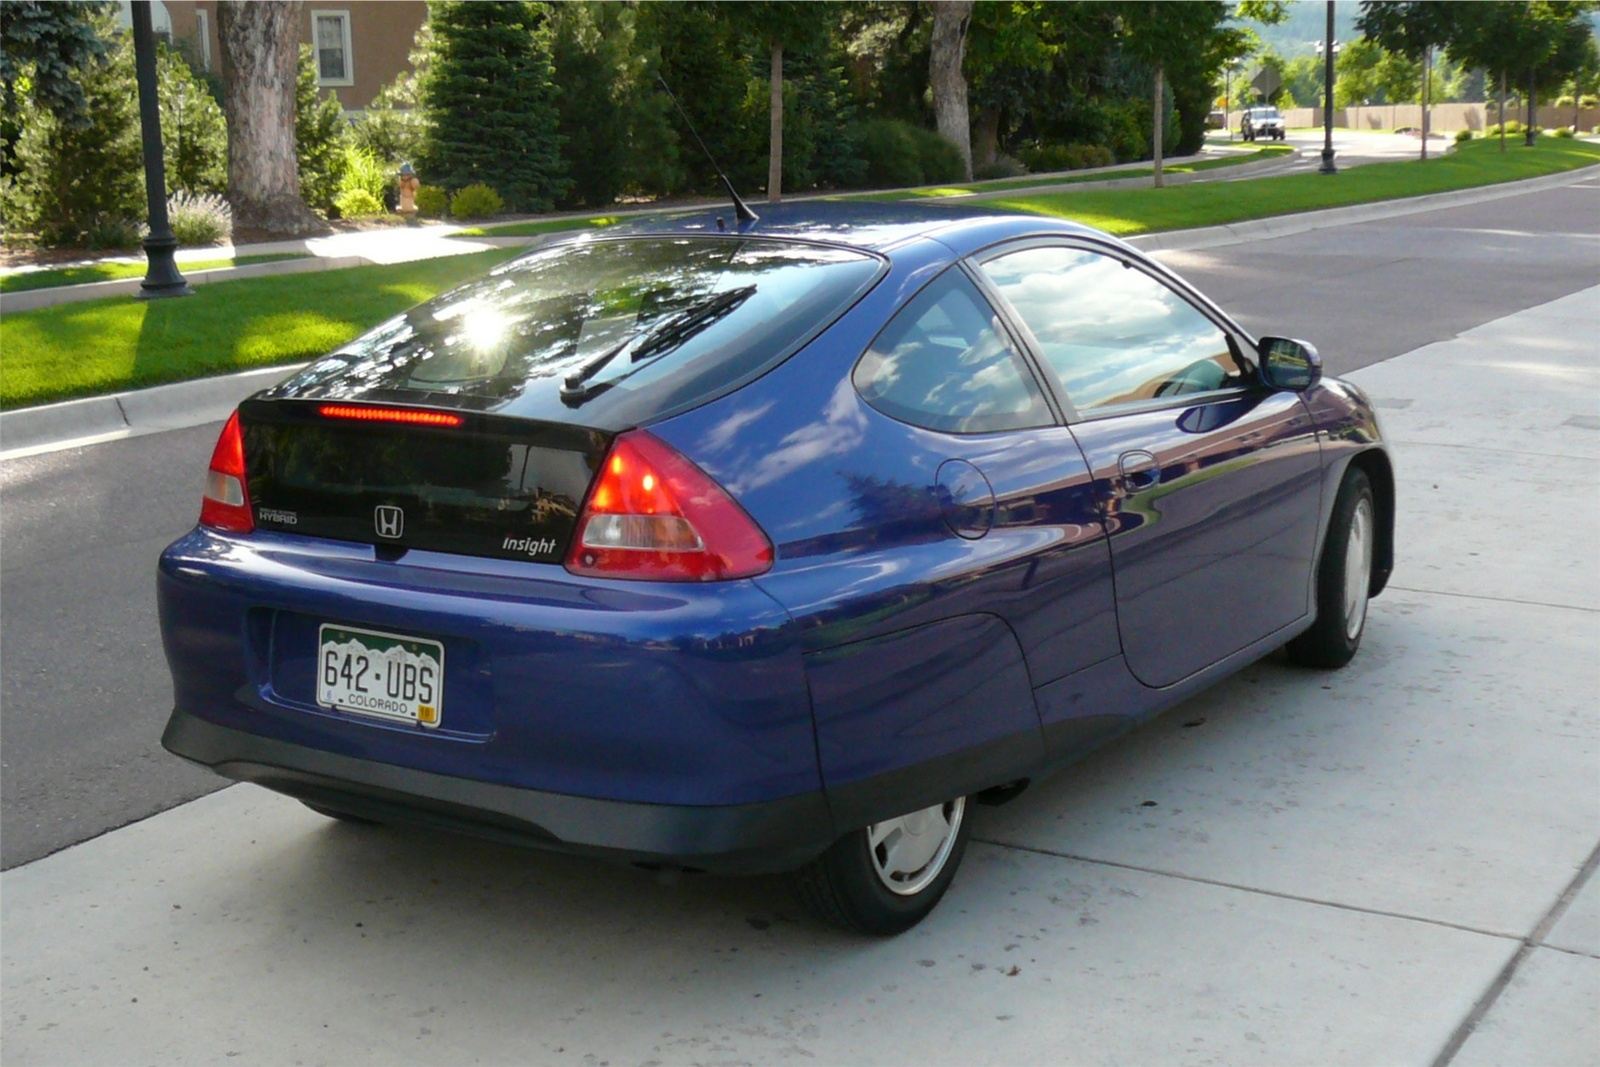 honda-insight-i-2001-pictures-206852